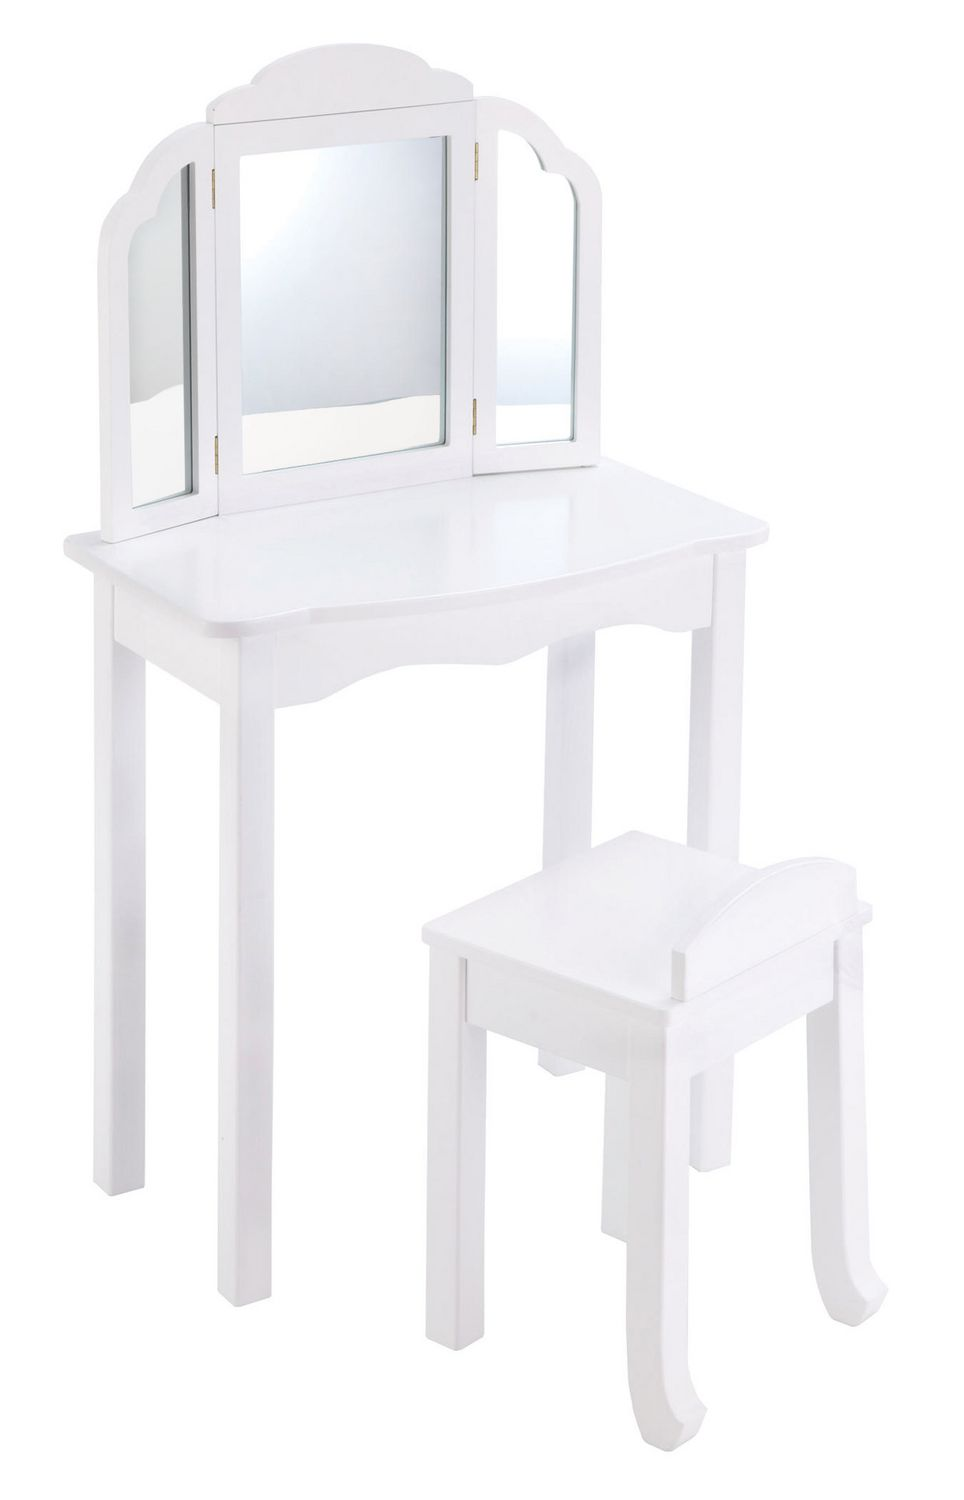 Guidecraft Expressions White Vanity Amp Stool Walmart Canada